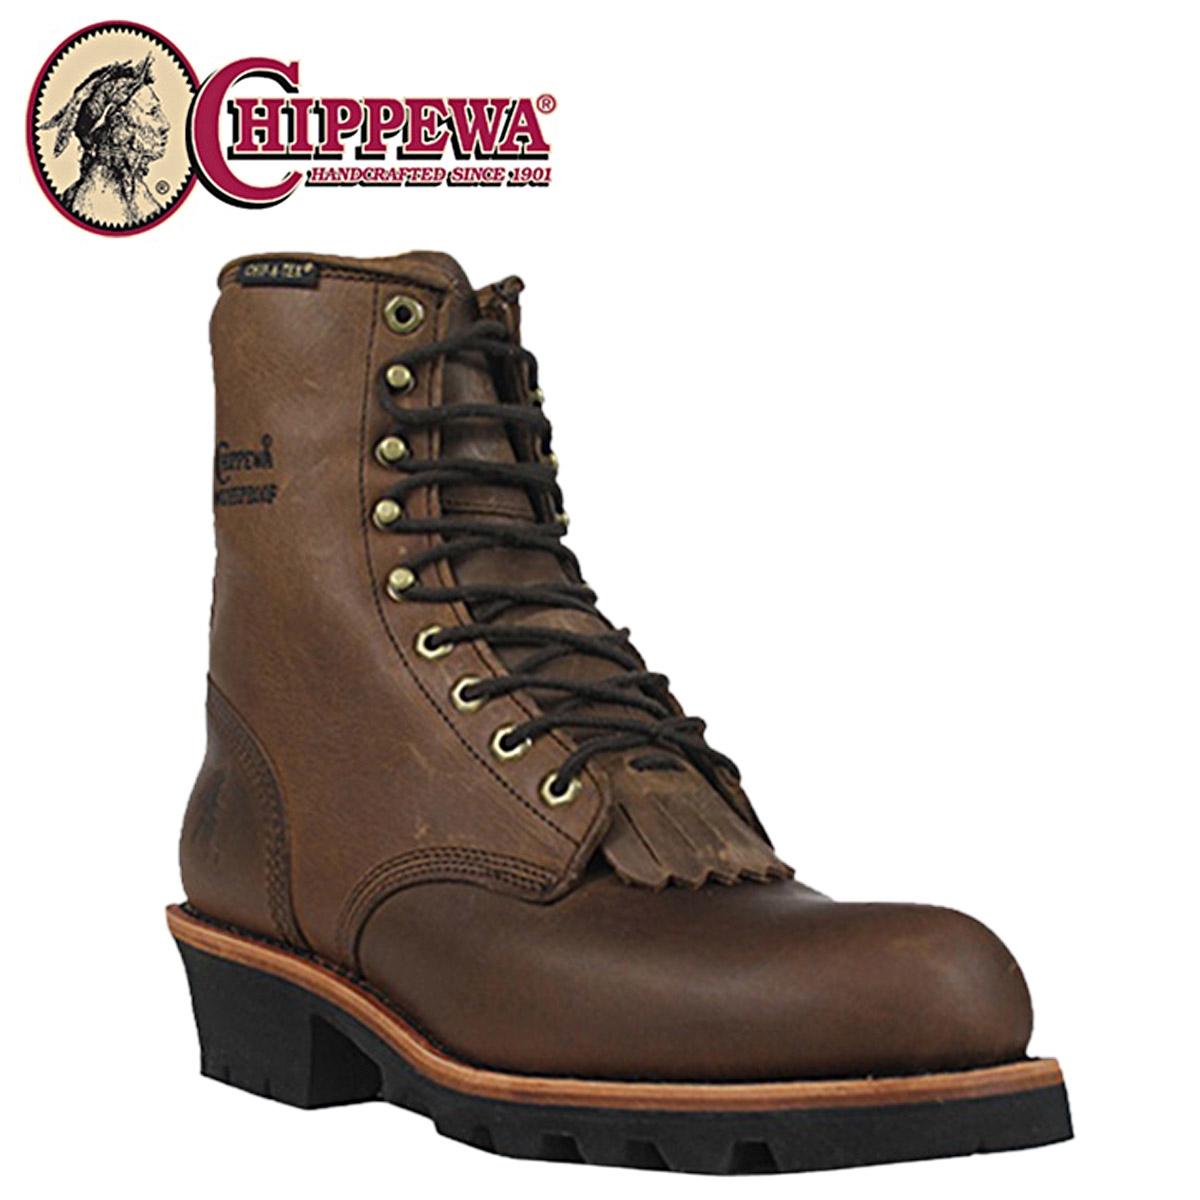 1d3ce950c9e Chippewa CHIPPEWA 8-inch logger boots [Bay Apache] 26340 8INCH BAY APACHE  WATERPROOF INS LOGGER 2 wise LEATHER men's BAY APACHE WATERPROOF